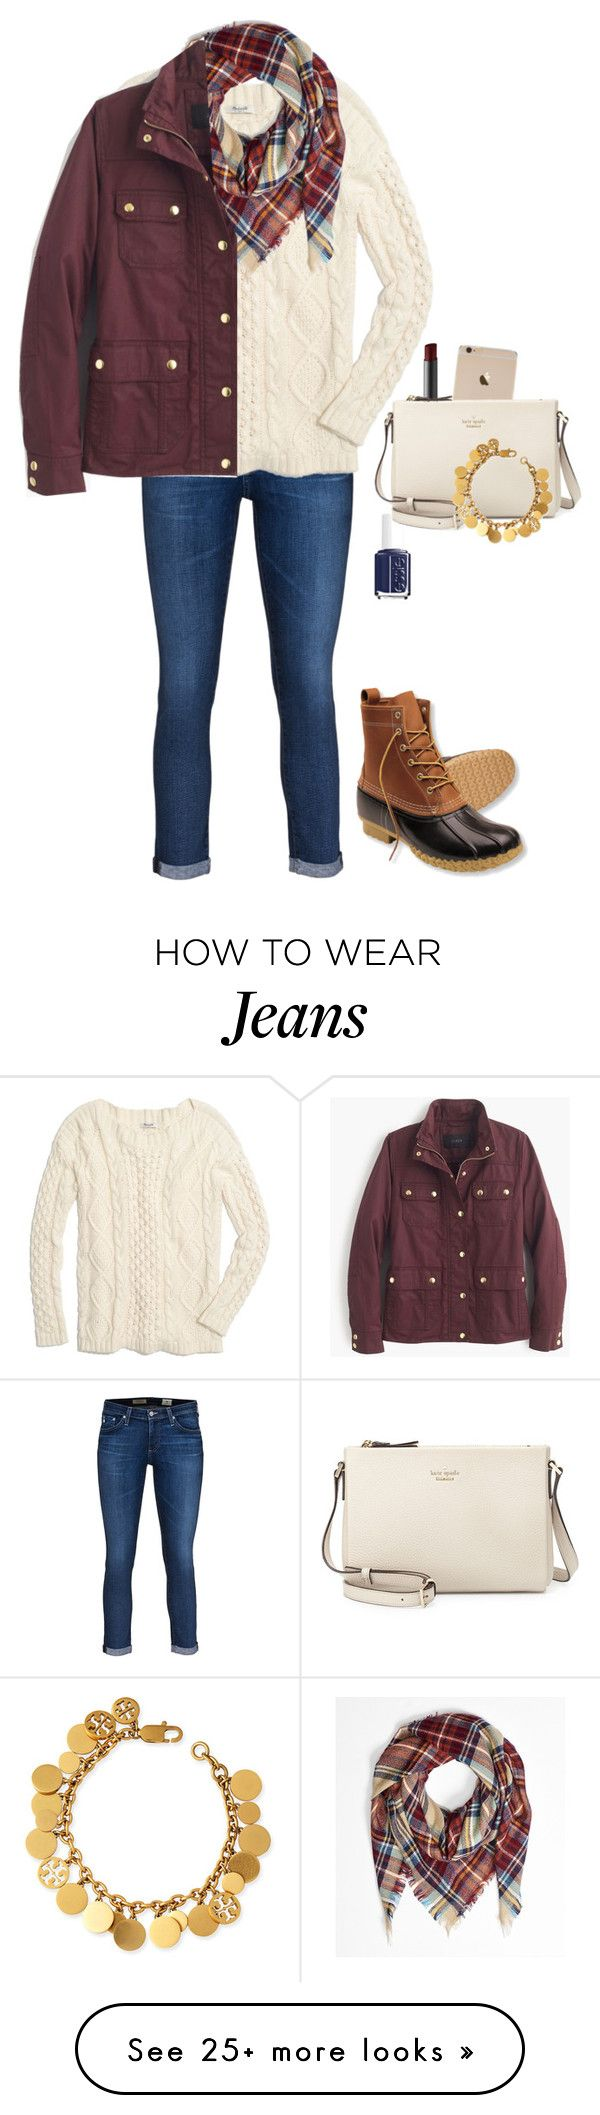 """keep me Inside the pocket Of your ripped jeans"" by lariho on Polyvore featuring AG Adriano Goldschmied, Madewell, J.Crew, L.L.Bean, NARS Cosmetics, Essie, Kate Spade and Tory Burch"